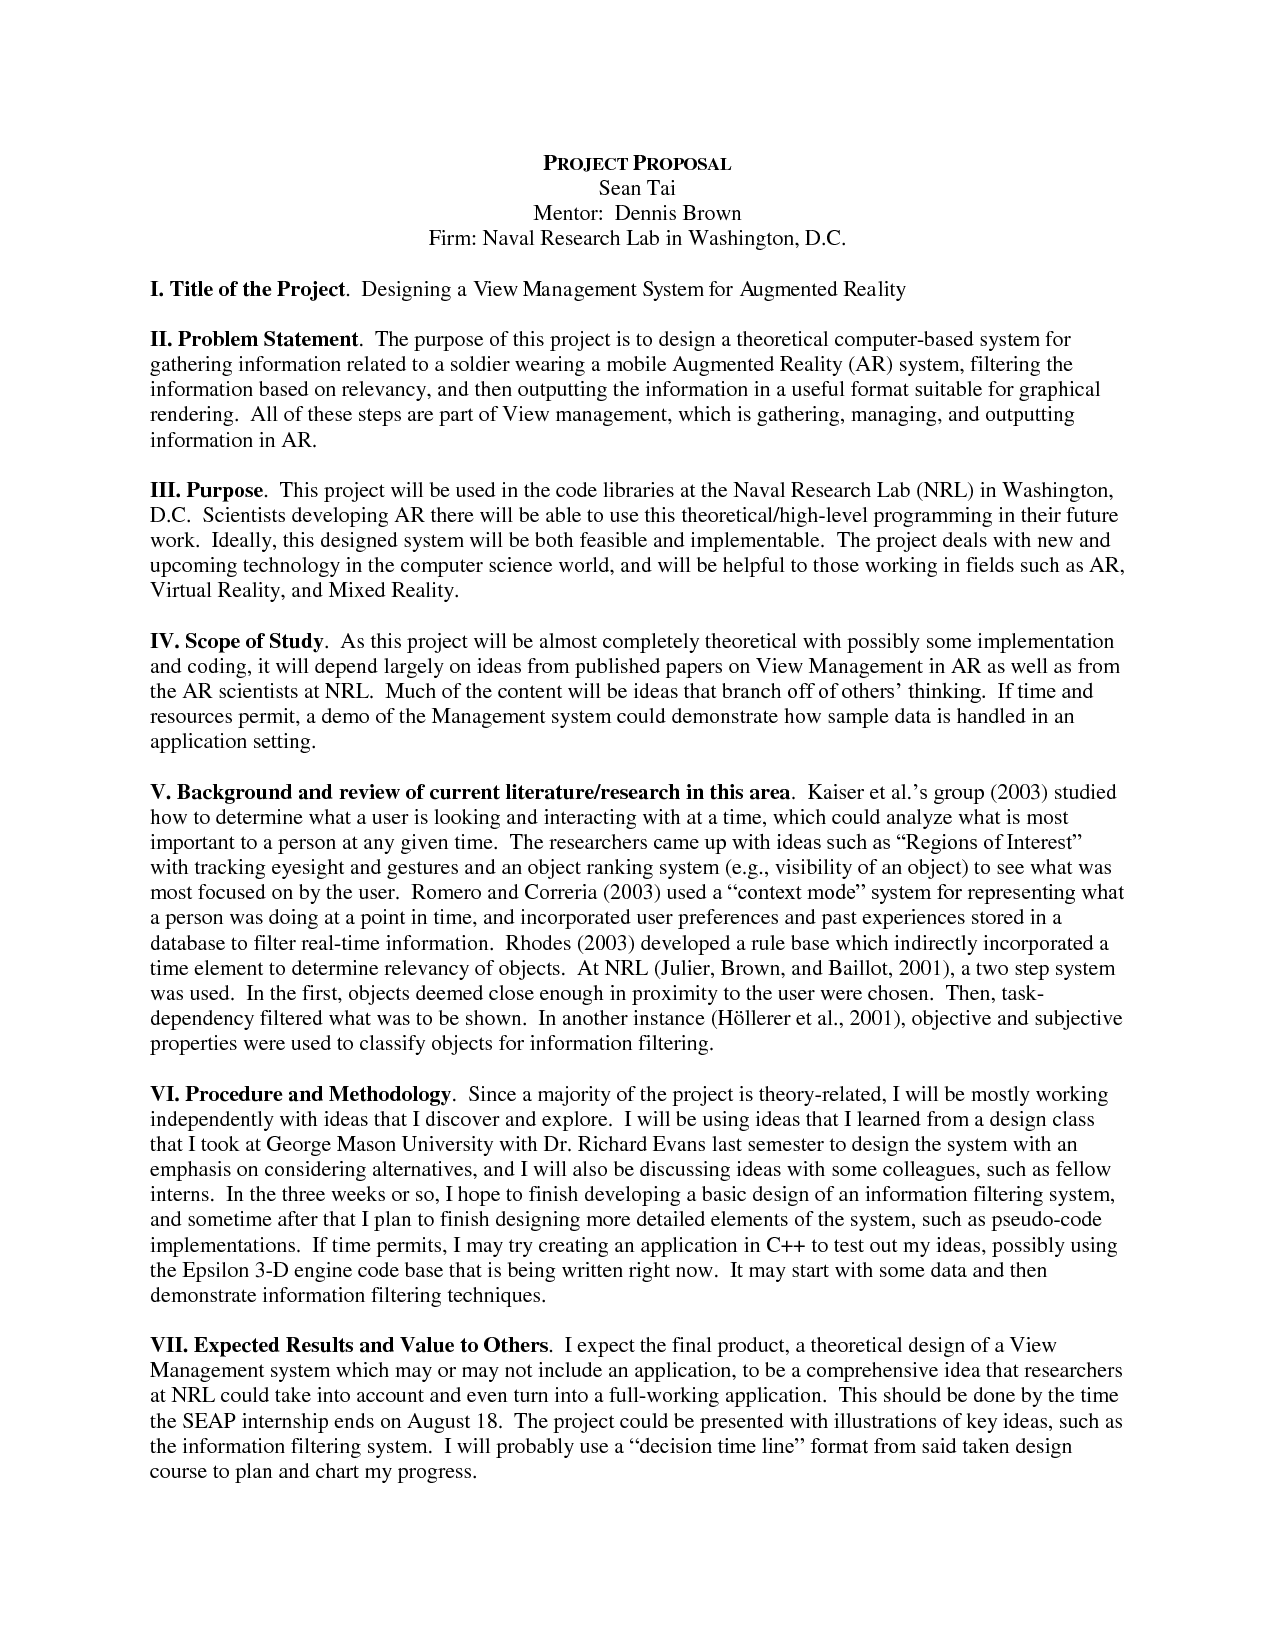 003 Research Paper Literature Review Apa Style 392631 Dreaded Format Sample Full